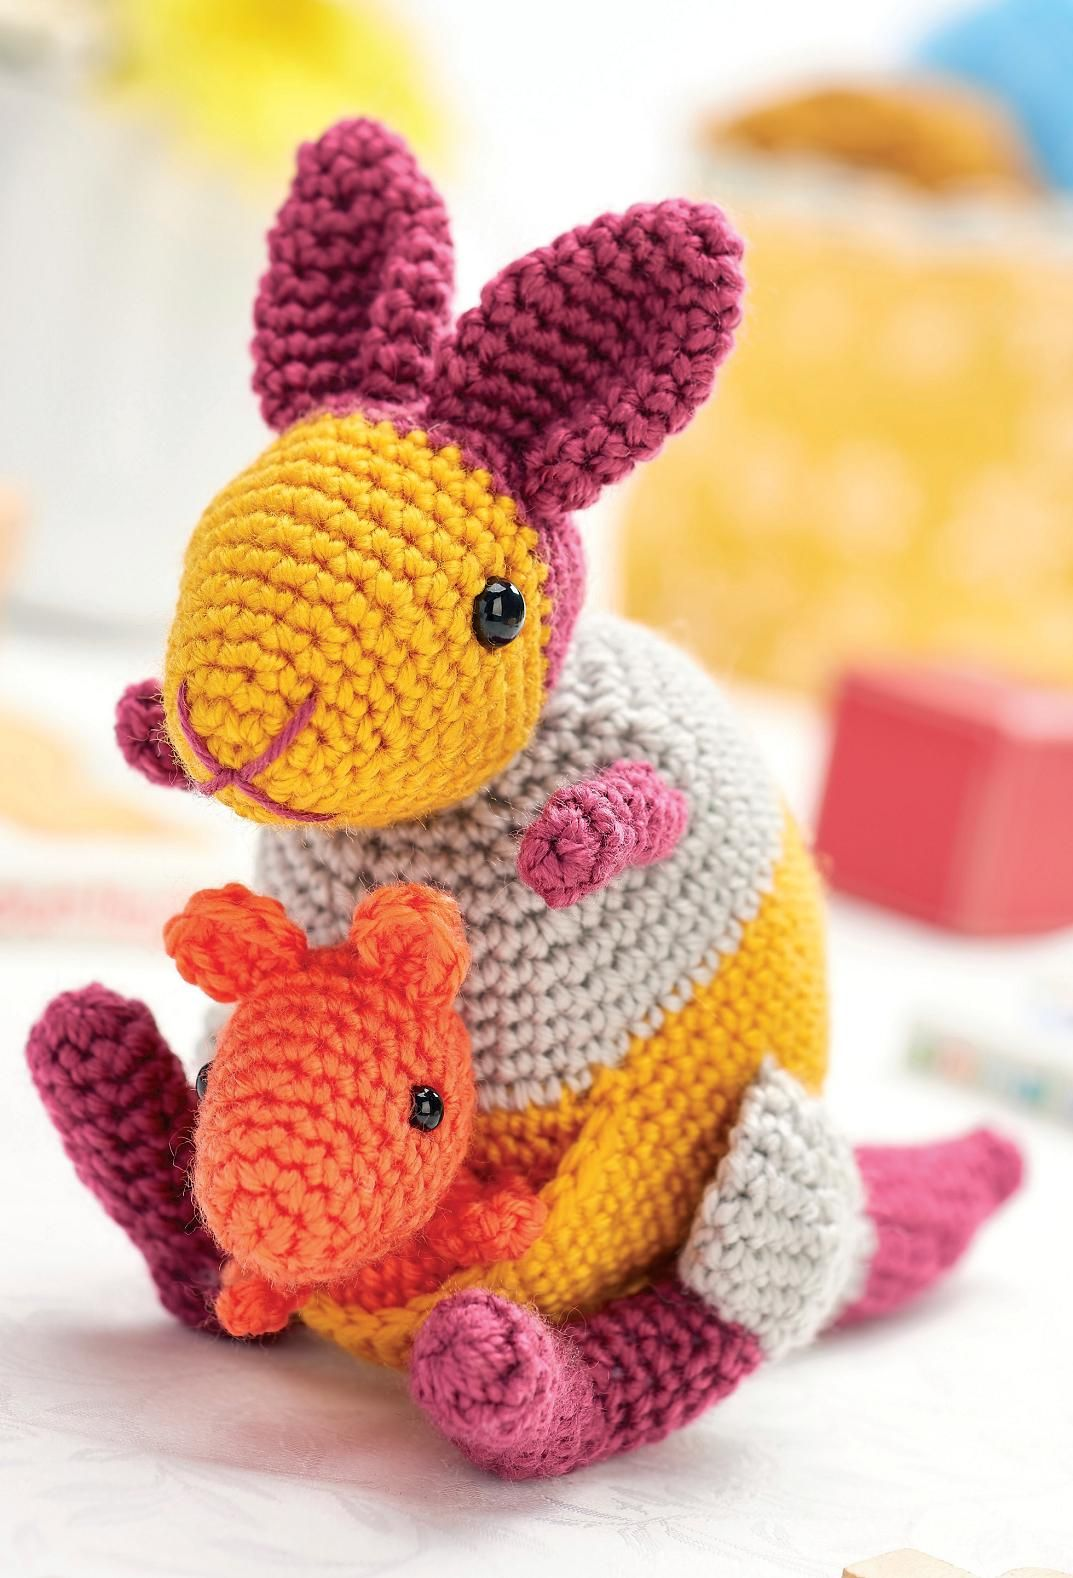 Kangaroo and joey Crochet Pattern | free pattern crochet | Pinterest ...